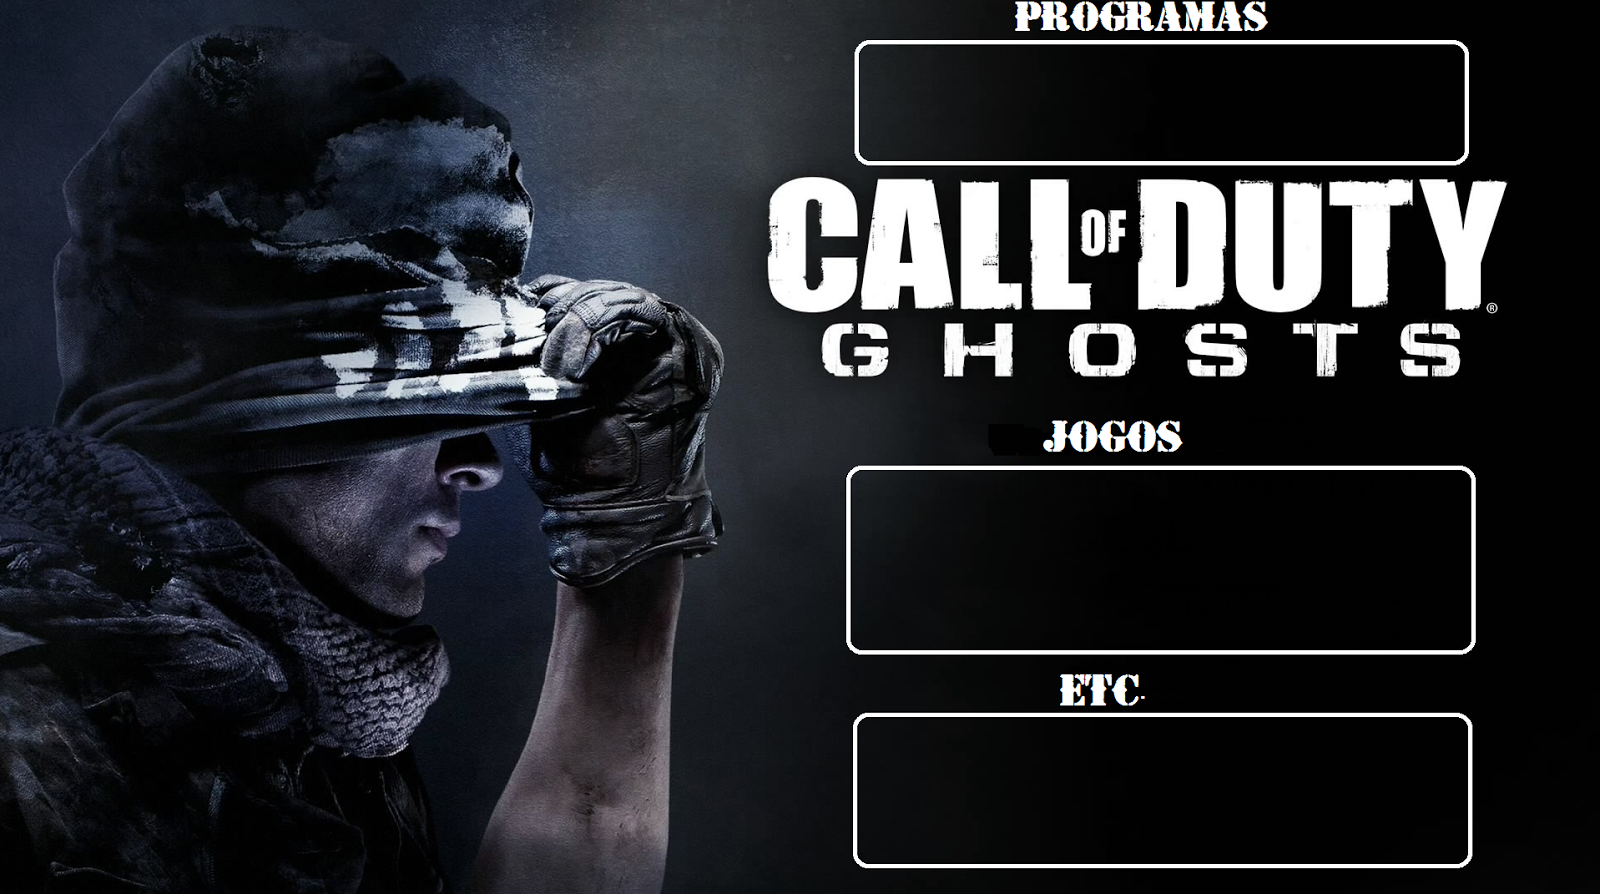 Wallpapers For Desktop Organizing Call Of Duty Ghosts Wallpaper